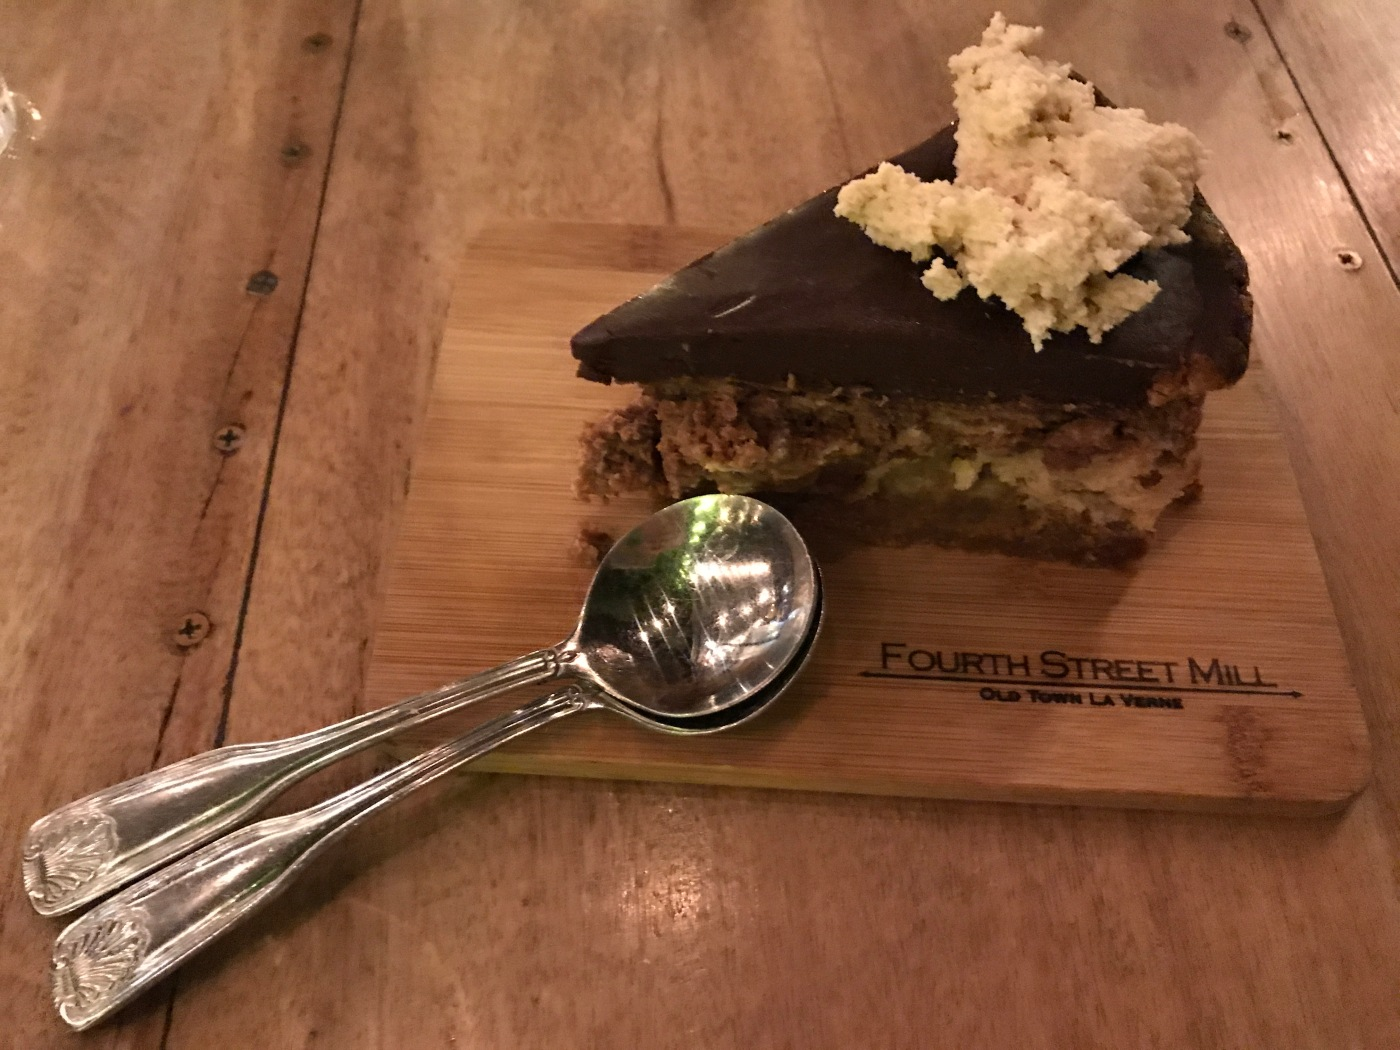 A Slice of Chocolate Peanut Butter Cheesecake Sits Beside Two Spoons at Fourth Street Mill in La Verne, California